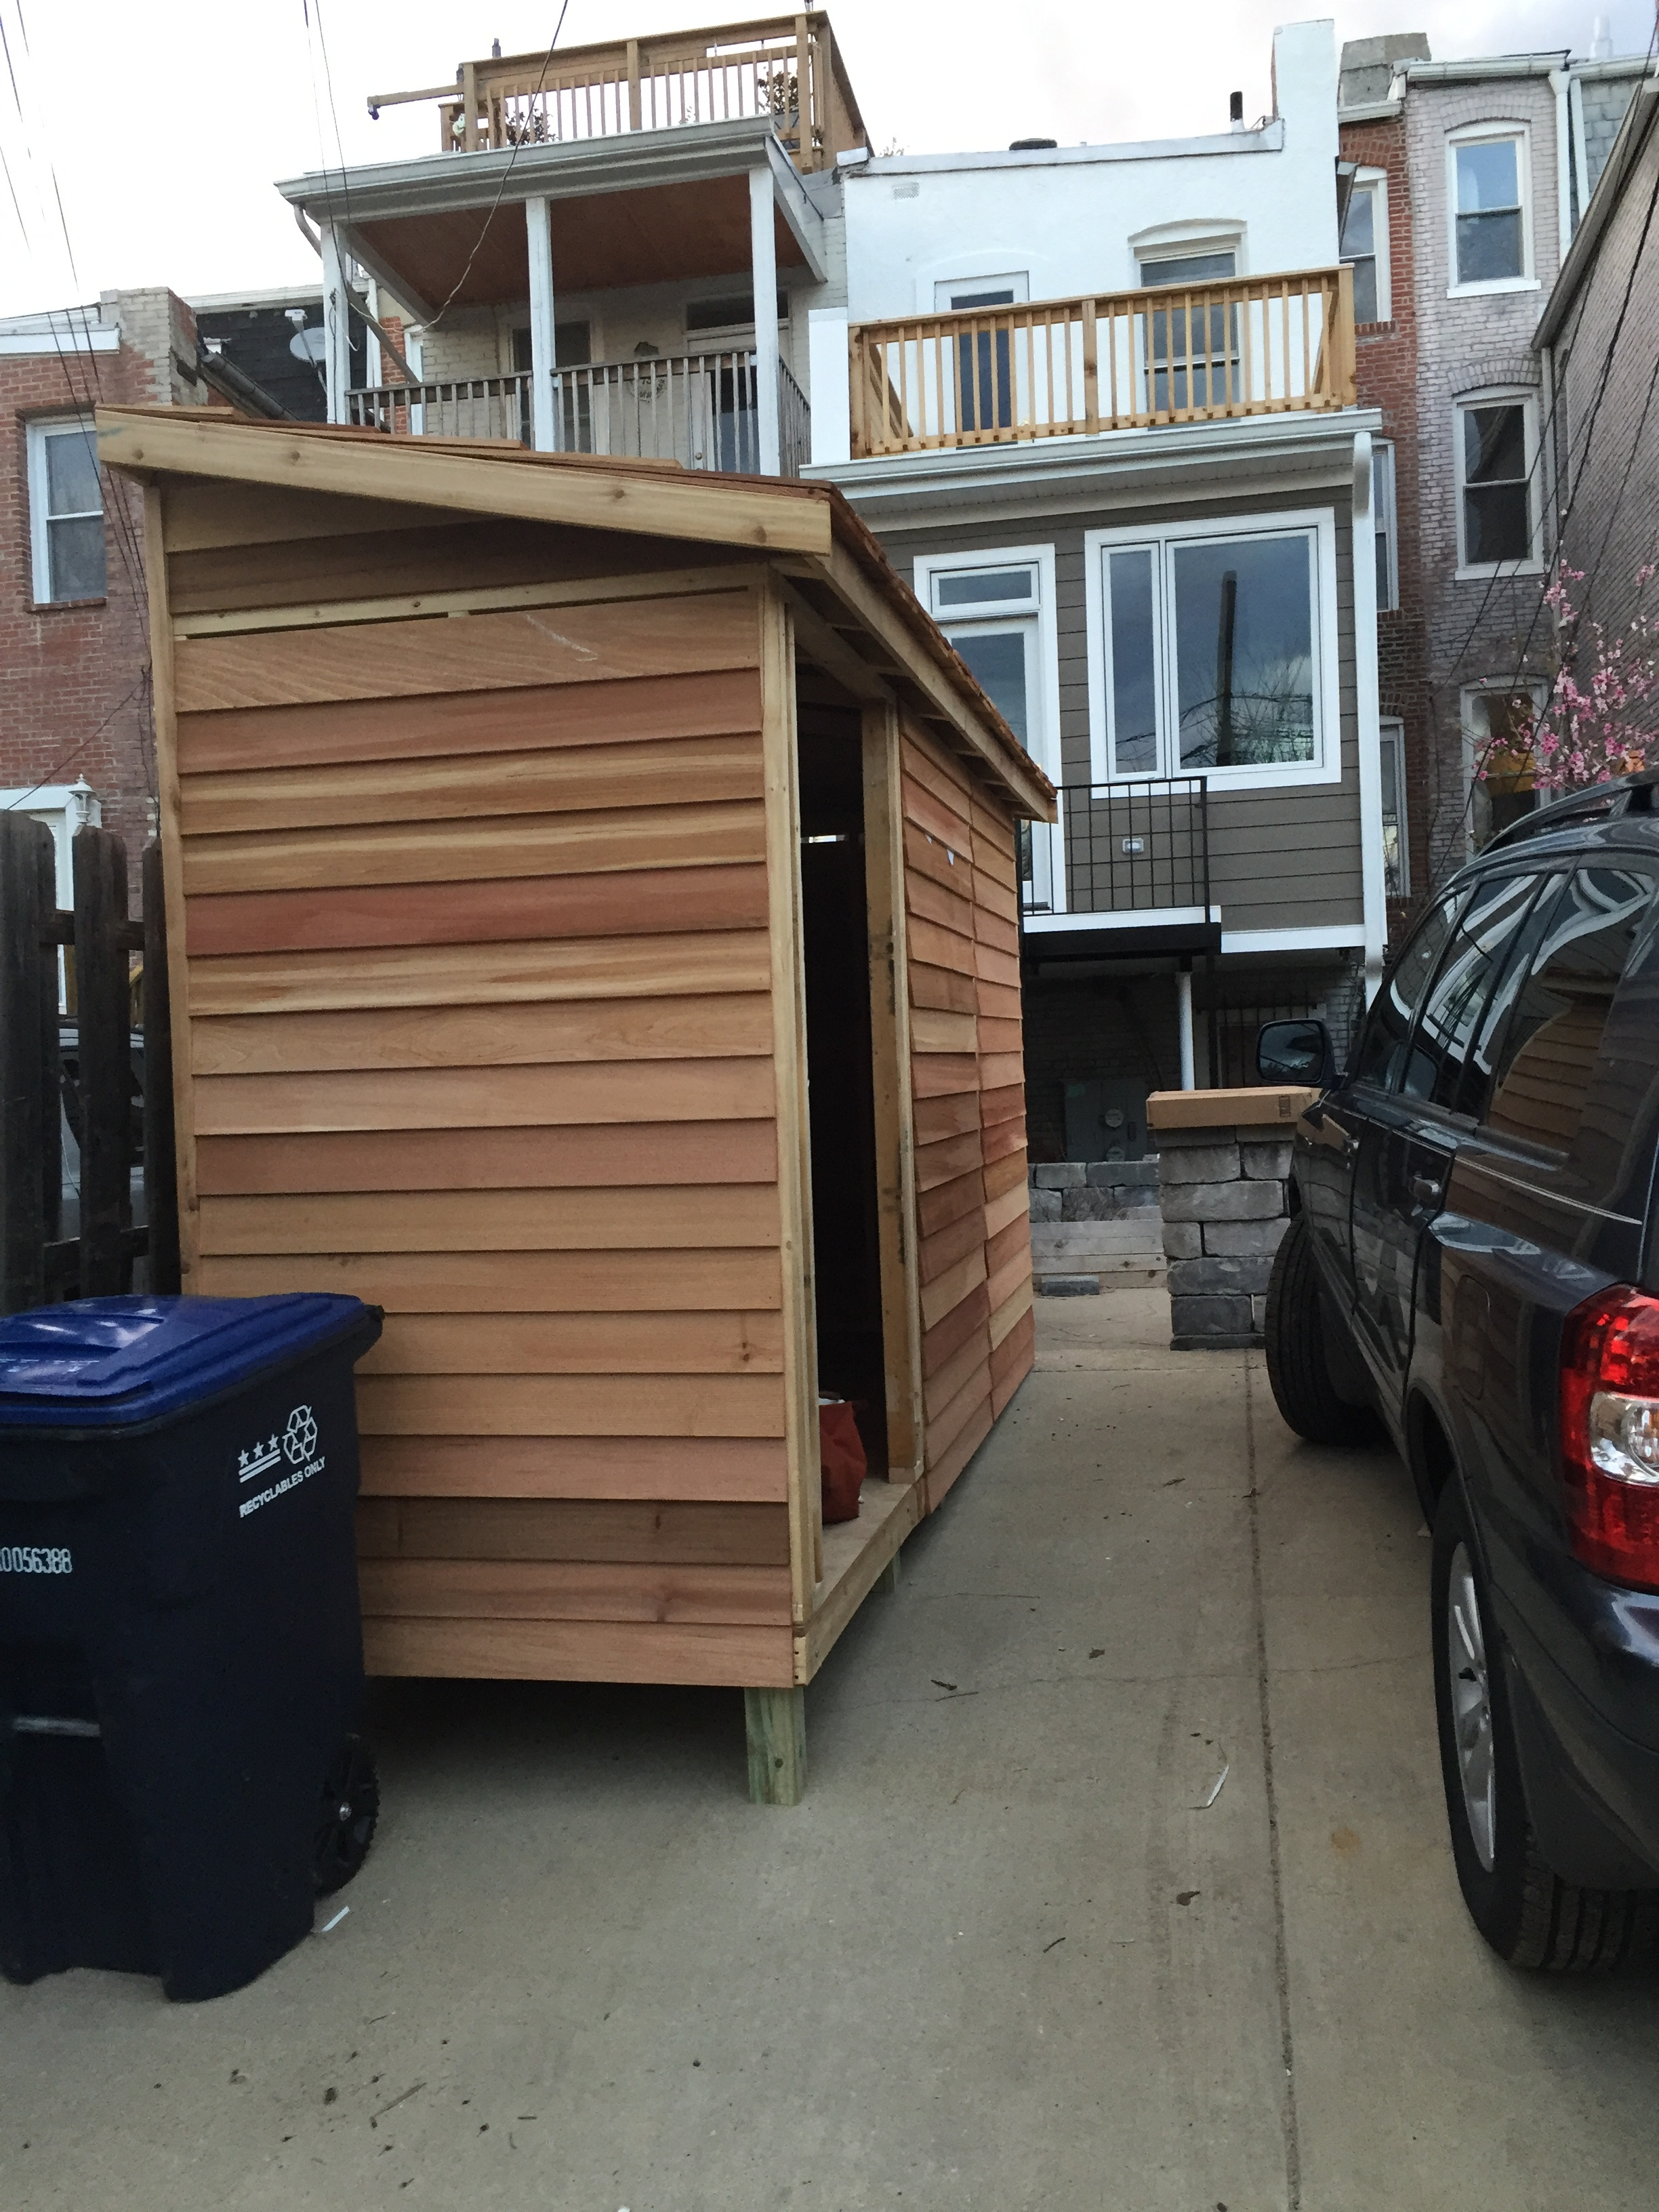 The new Canadian cedar bike shed was constructed from a kit--notice our new deck on the second floor above the kitchen.